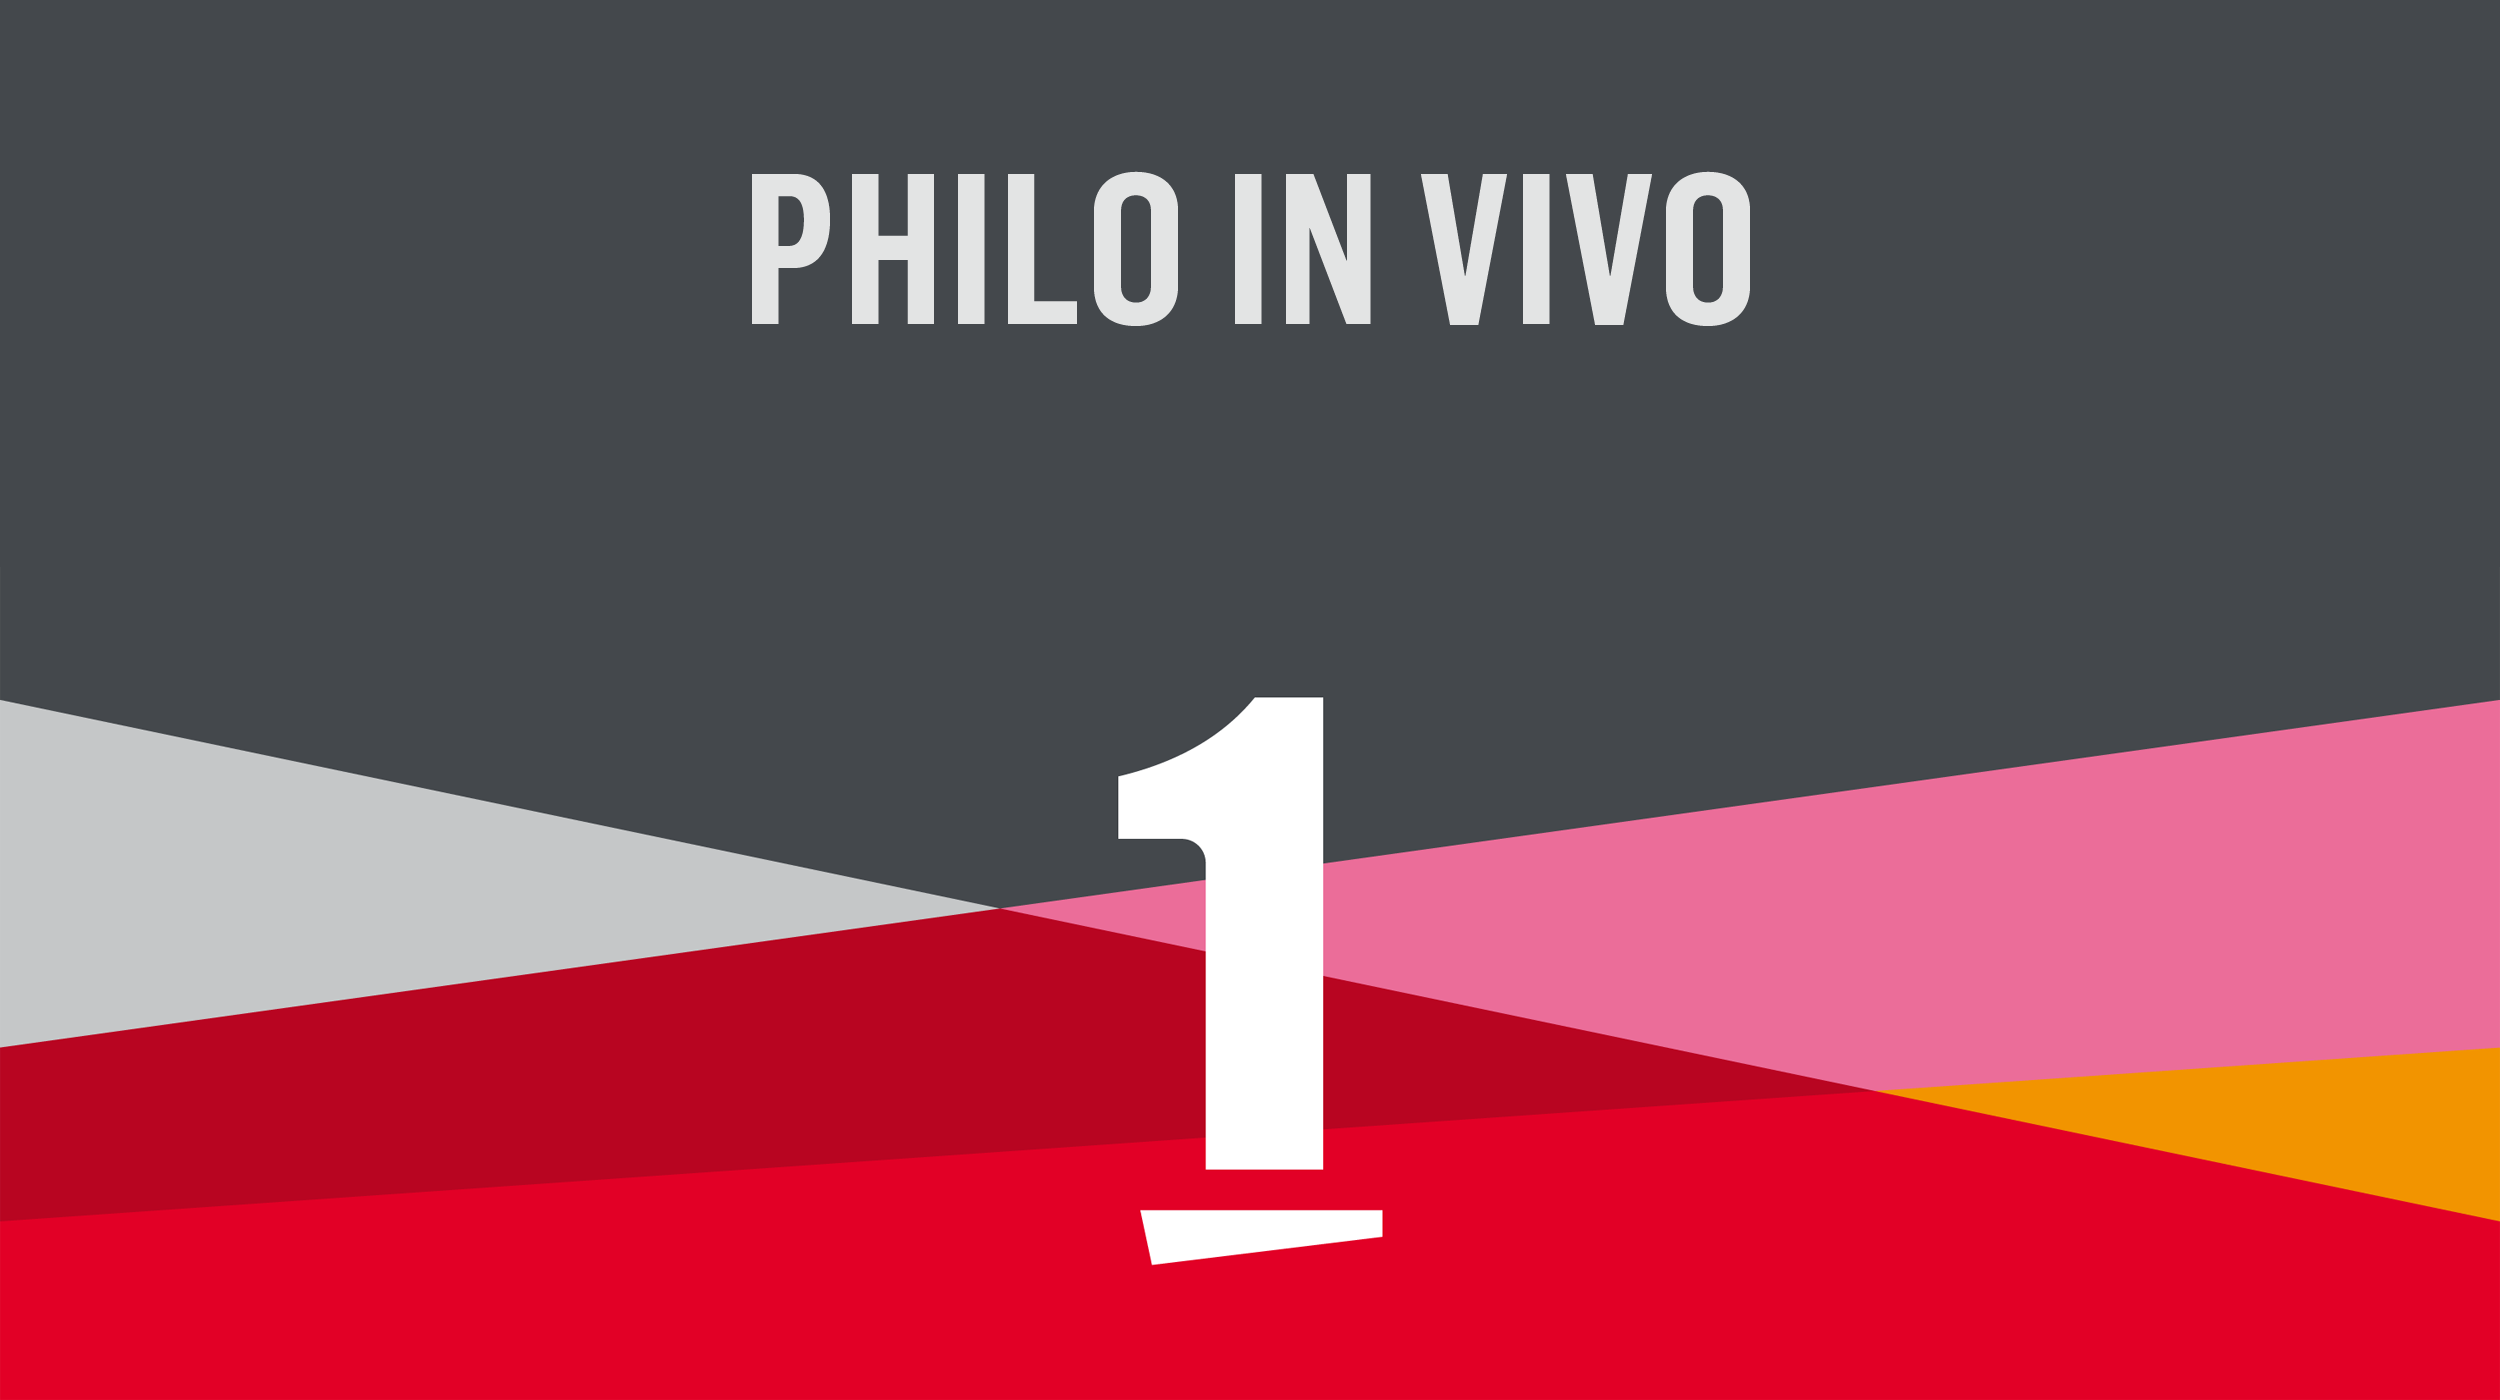 Logo Philo in vivo [RTS]